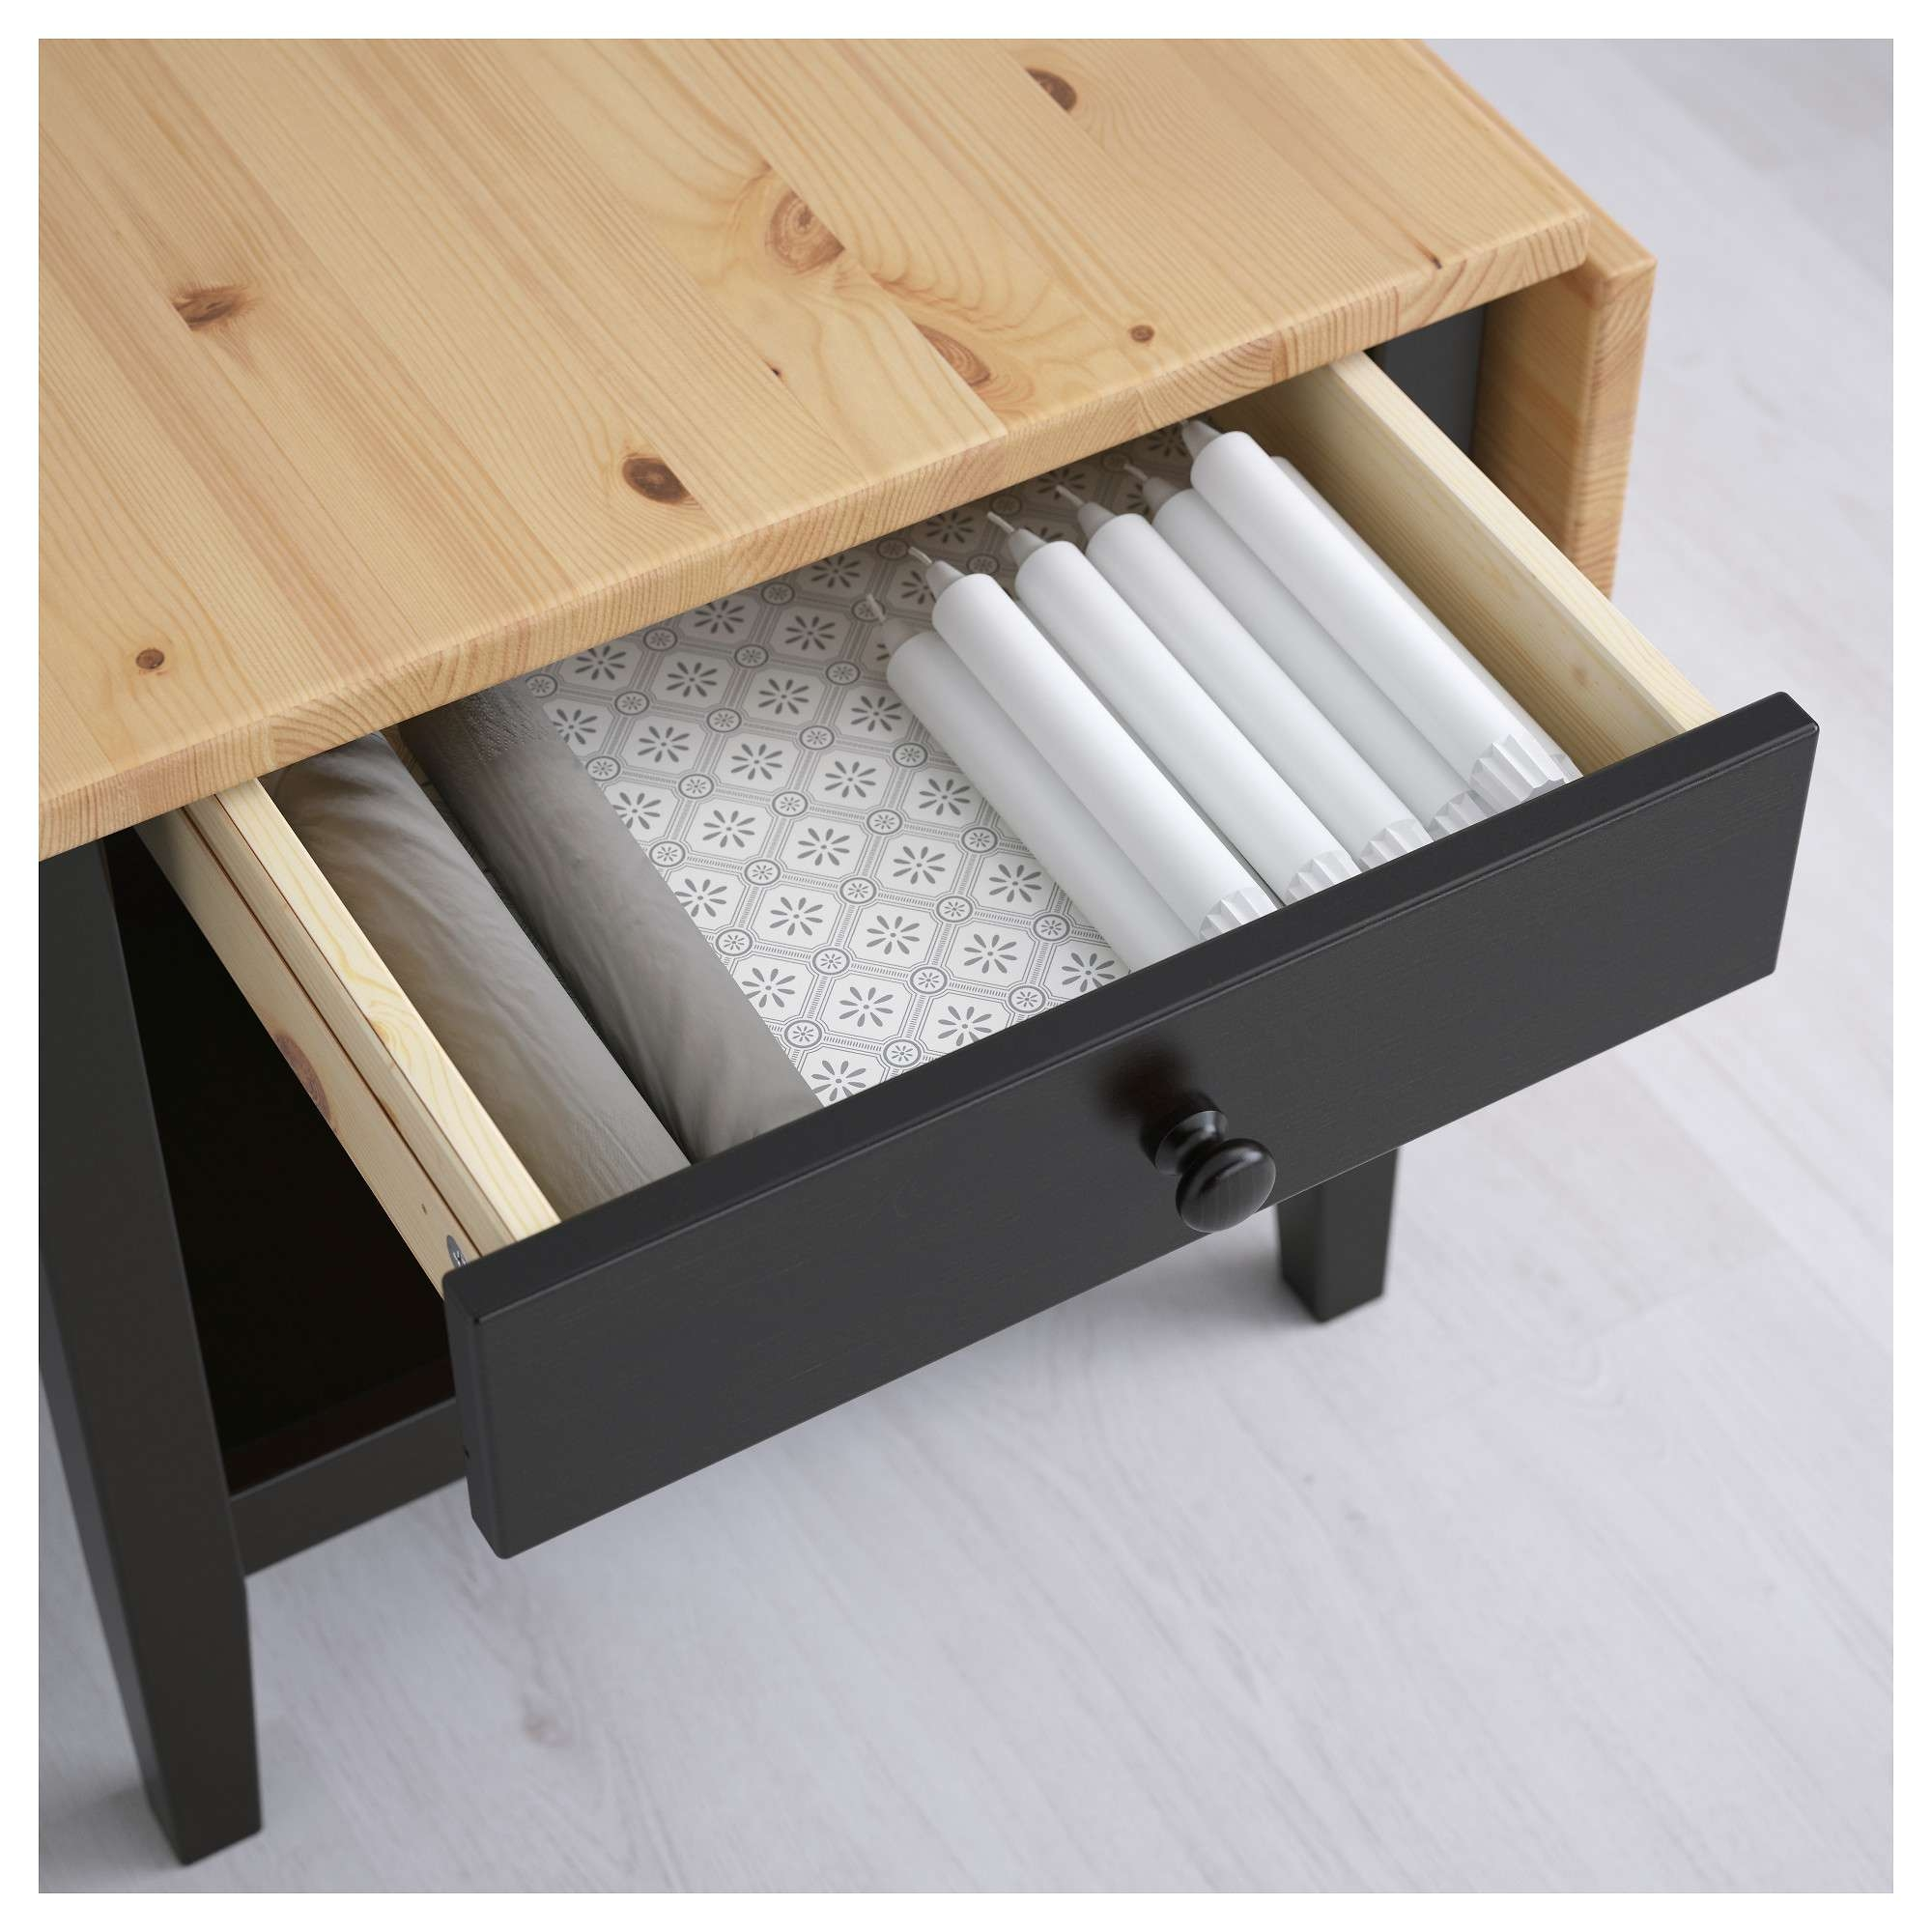 Arkelstorp Coffee Table Black 65X140X52 Cm – Ikea Within Most Up To Date Coffee Tables Solid Wood (View 2 of 20)